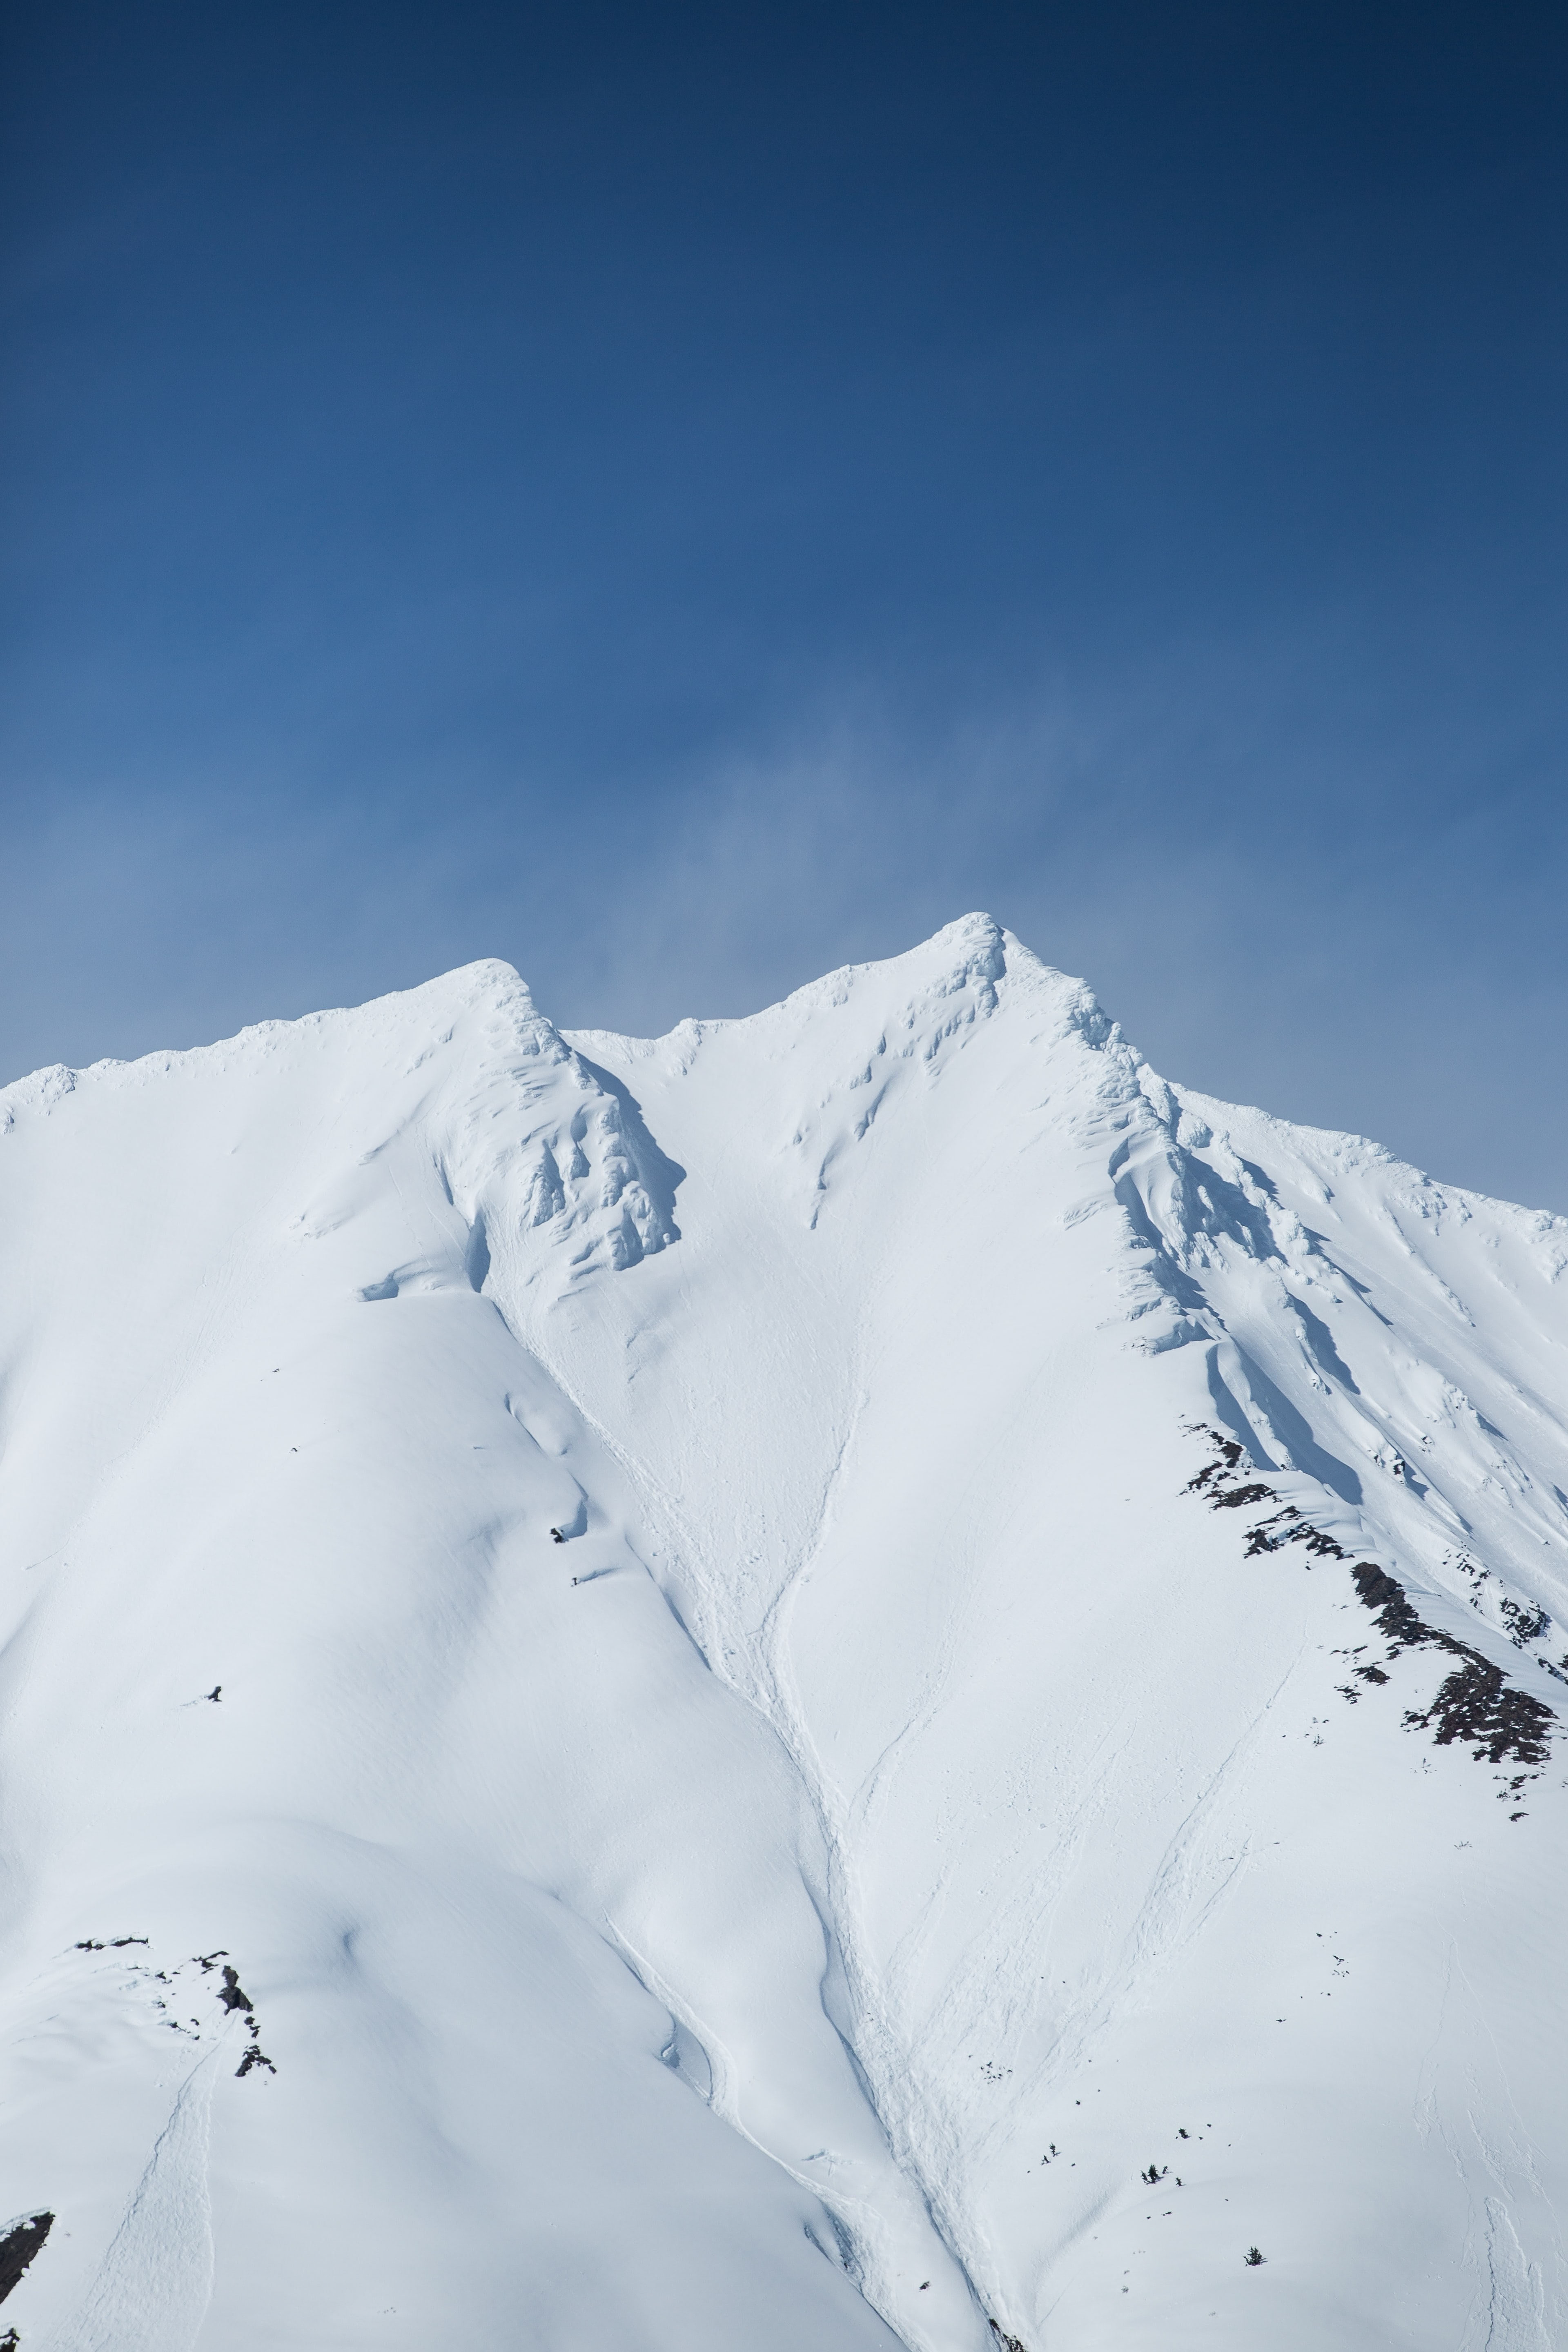 A mountain's crest covered in a thick layer of snow